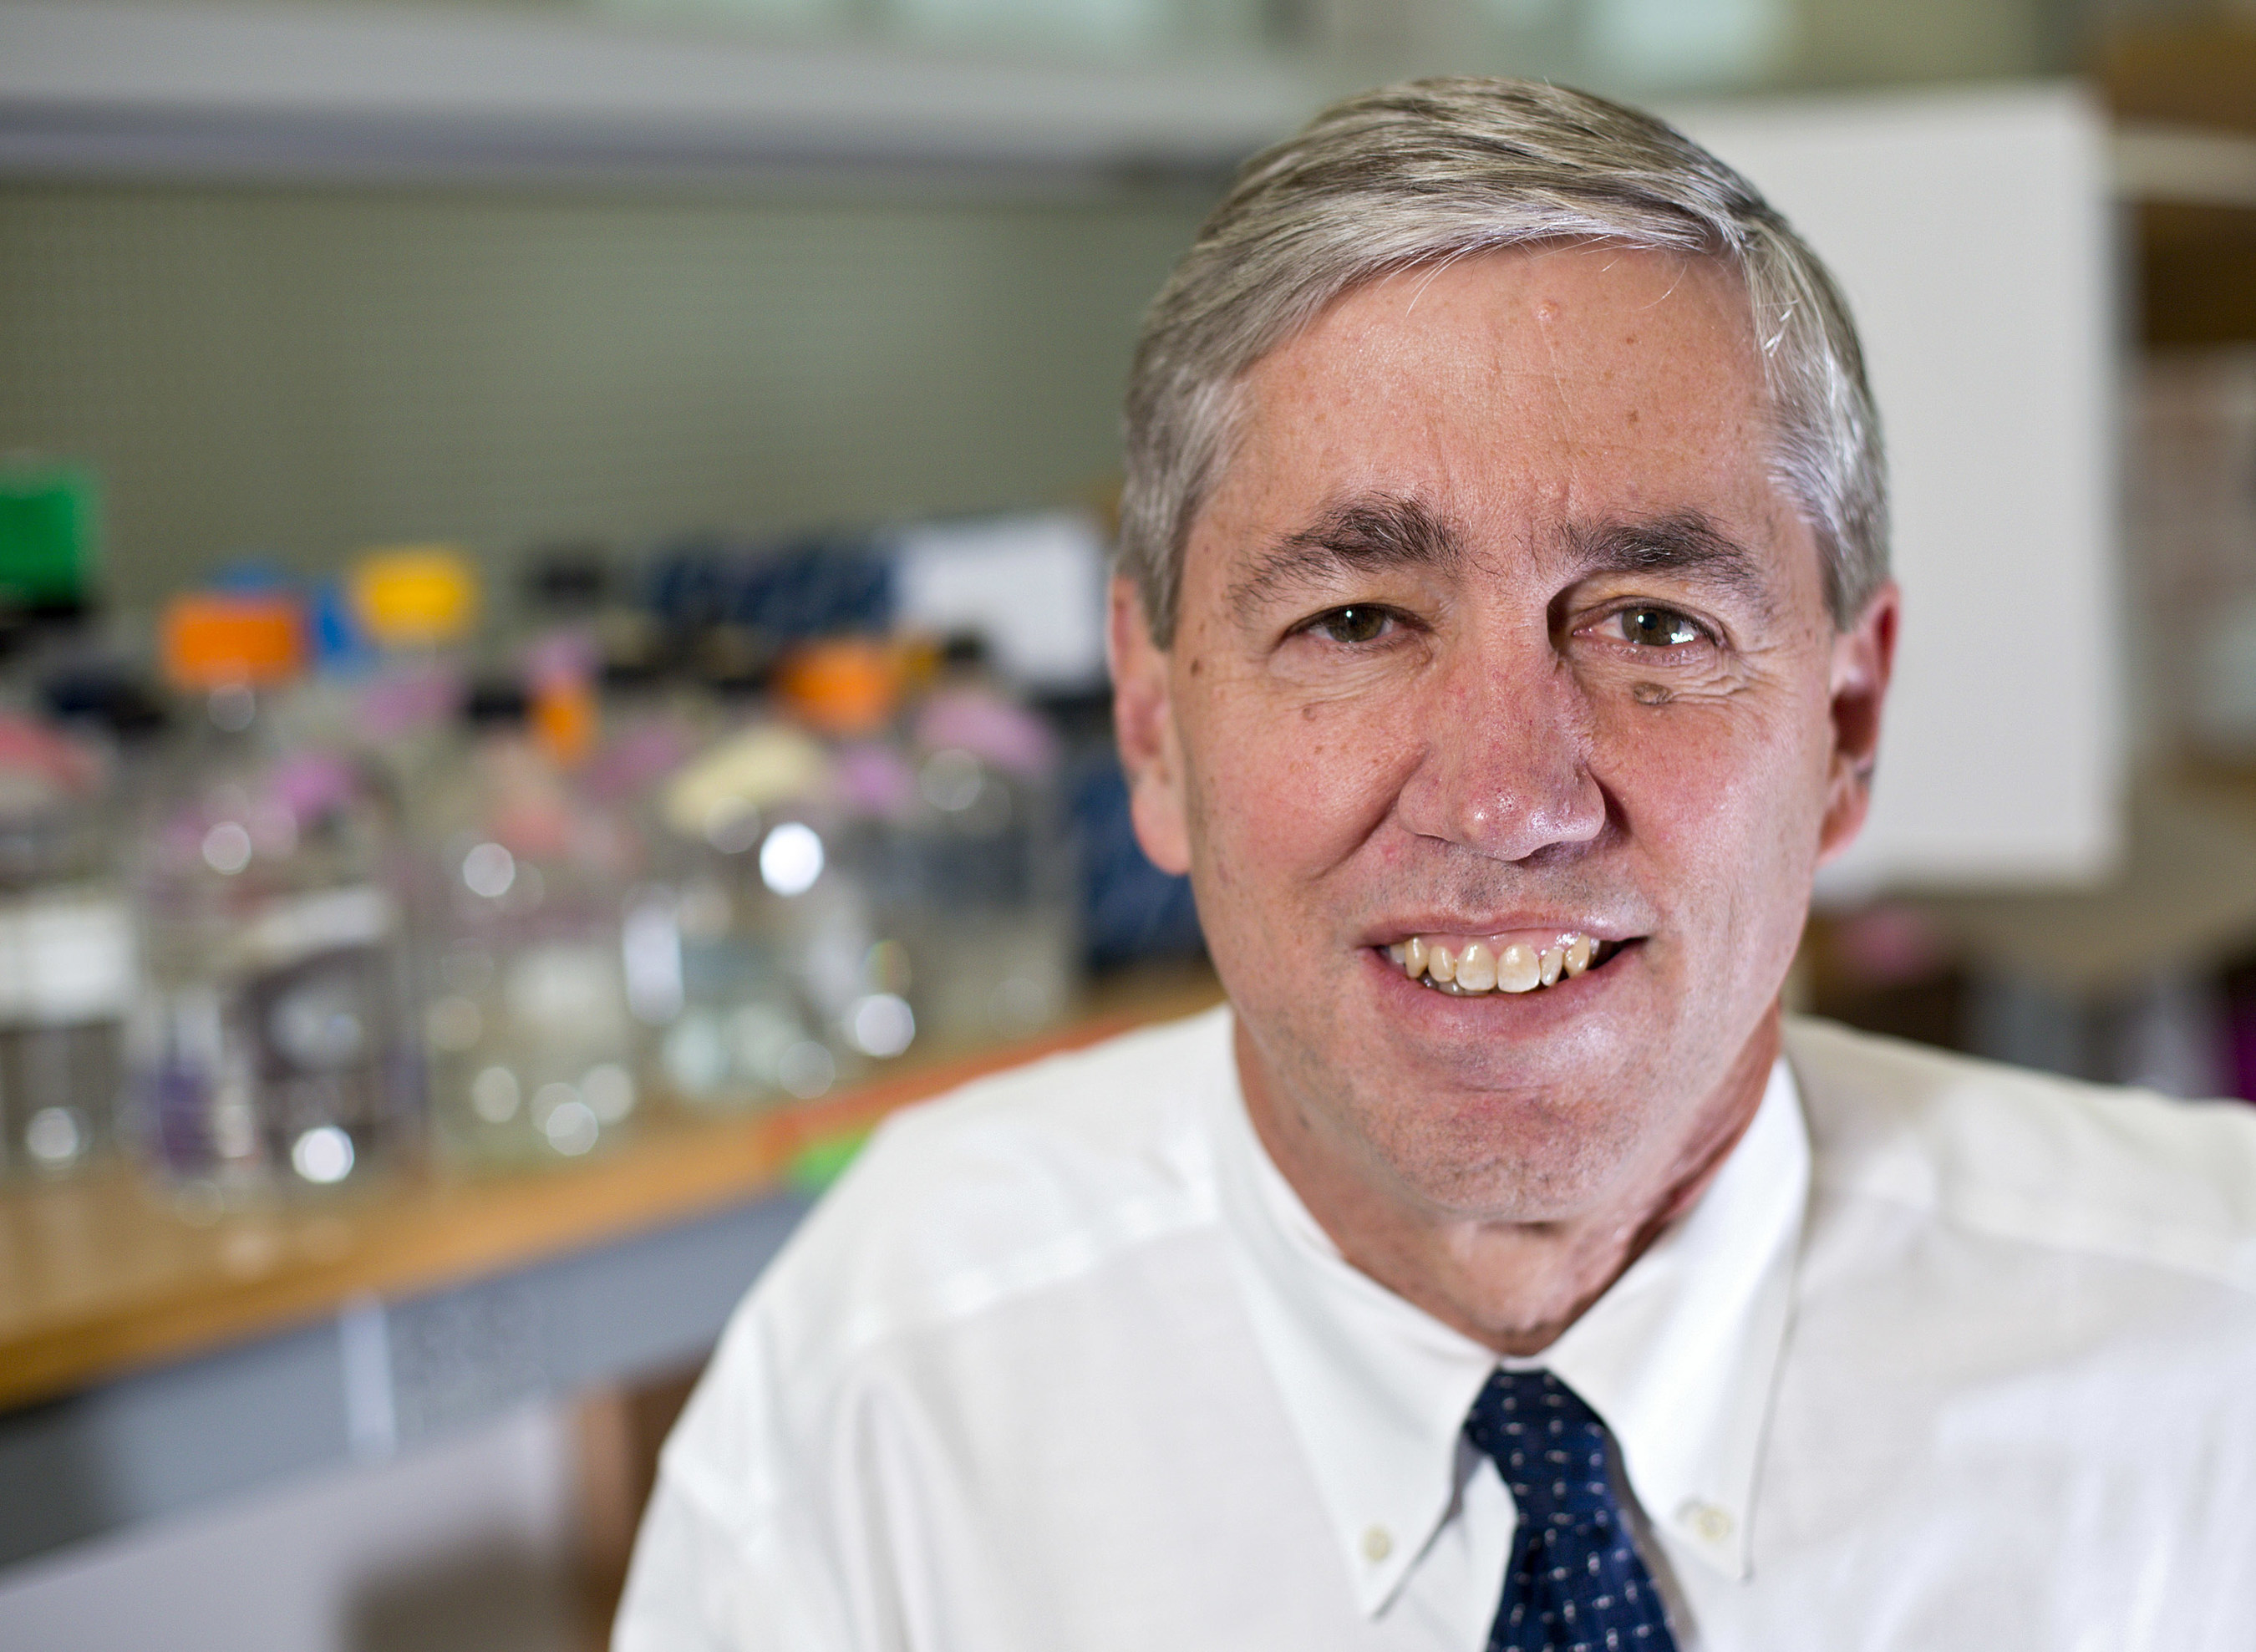 Richard P. Lifton, M.D., Ph.D., has been named eleventh president of The Rockefeller University in New York City. Photo: Brian Ach / Howard Hughes Medical Institute.